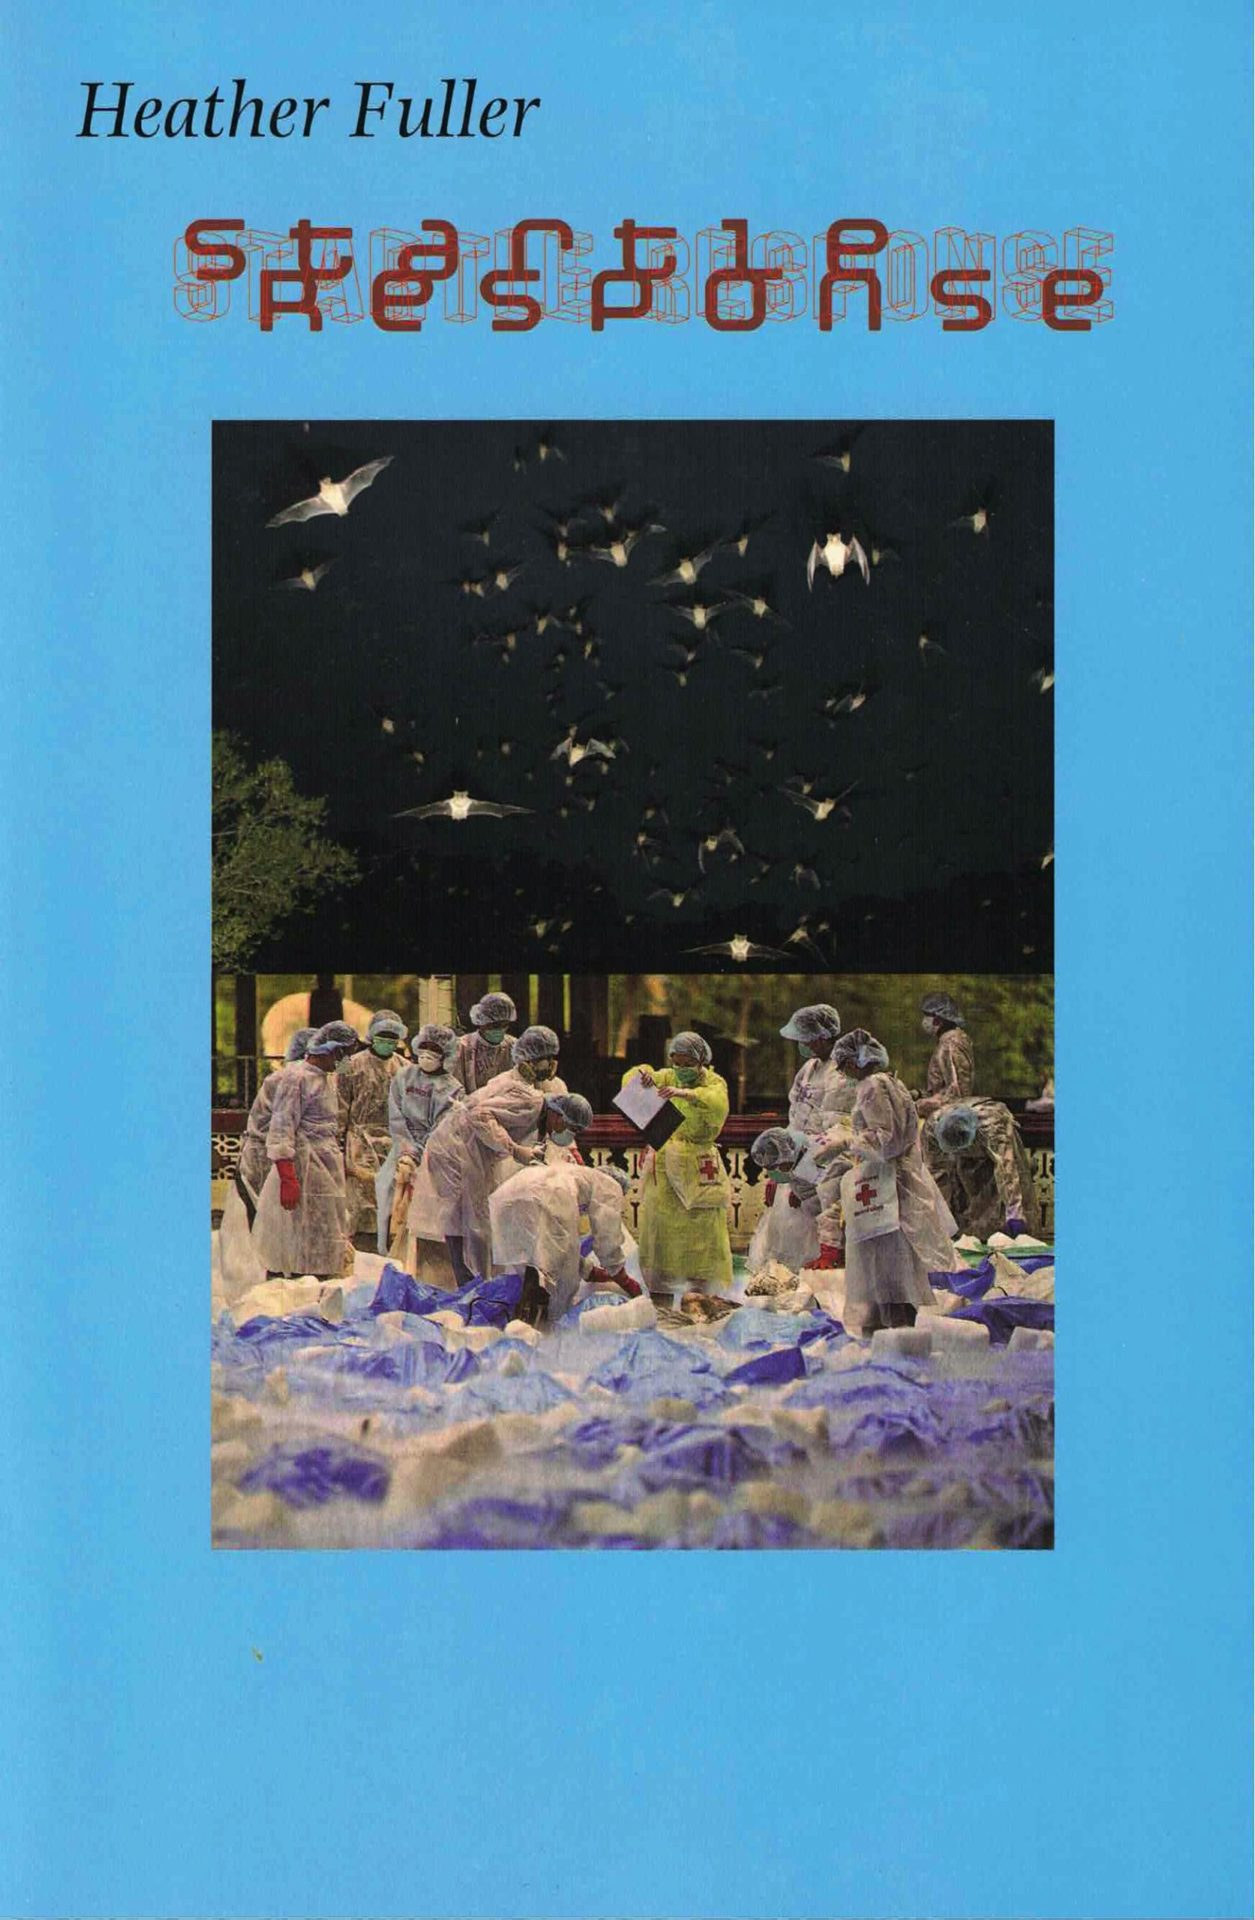 cover of Startle Response by heather fuller, sky blue background with an image of bats flying at night on top of an image of a group of healthcare personnel in full gowns, masks, and hair nets